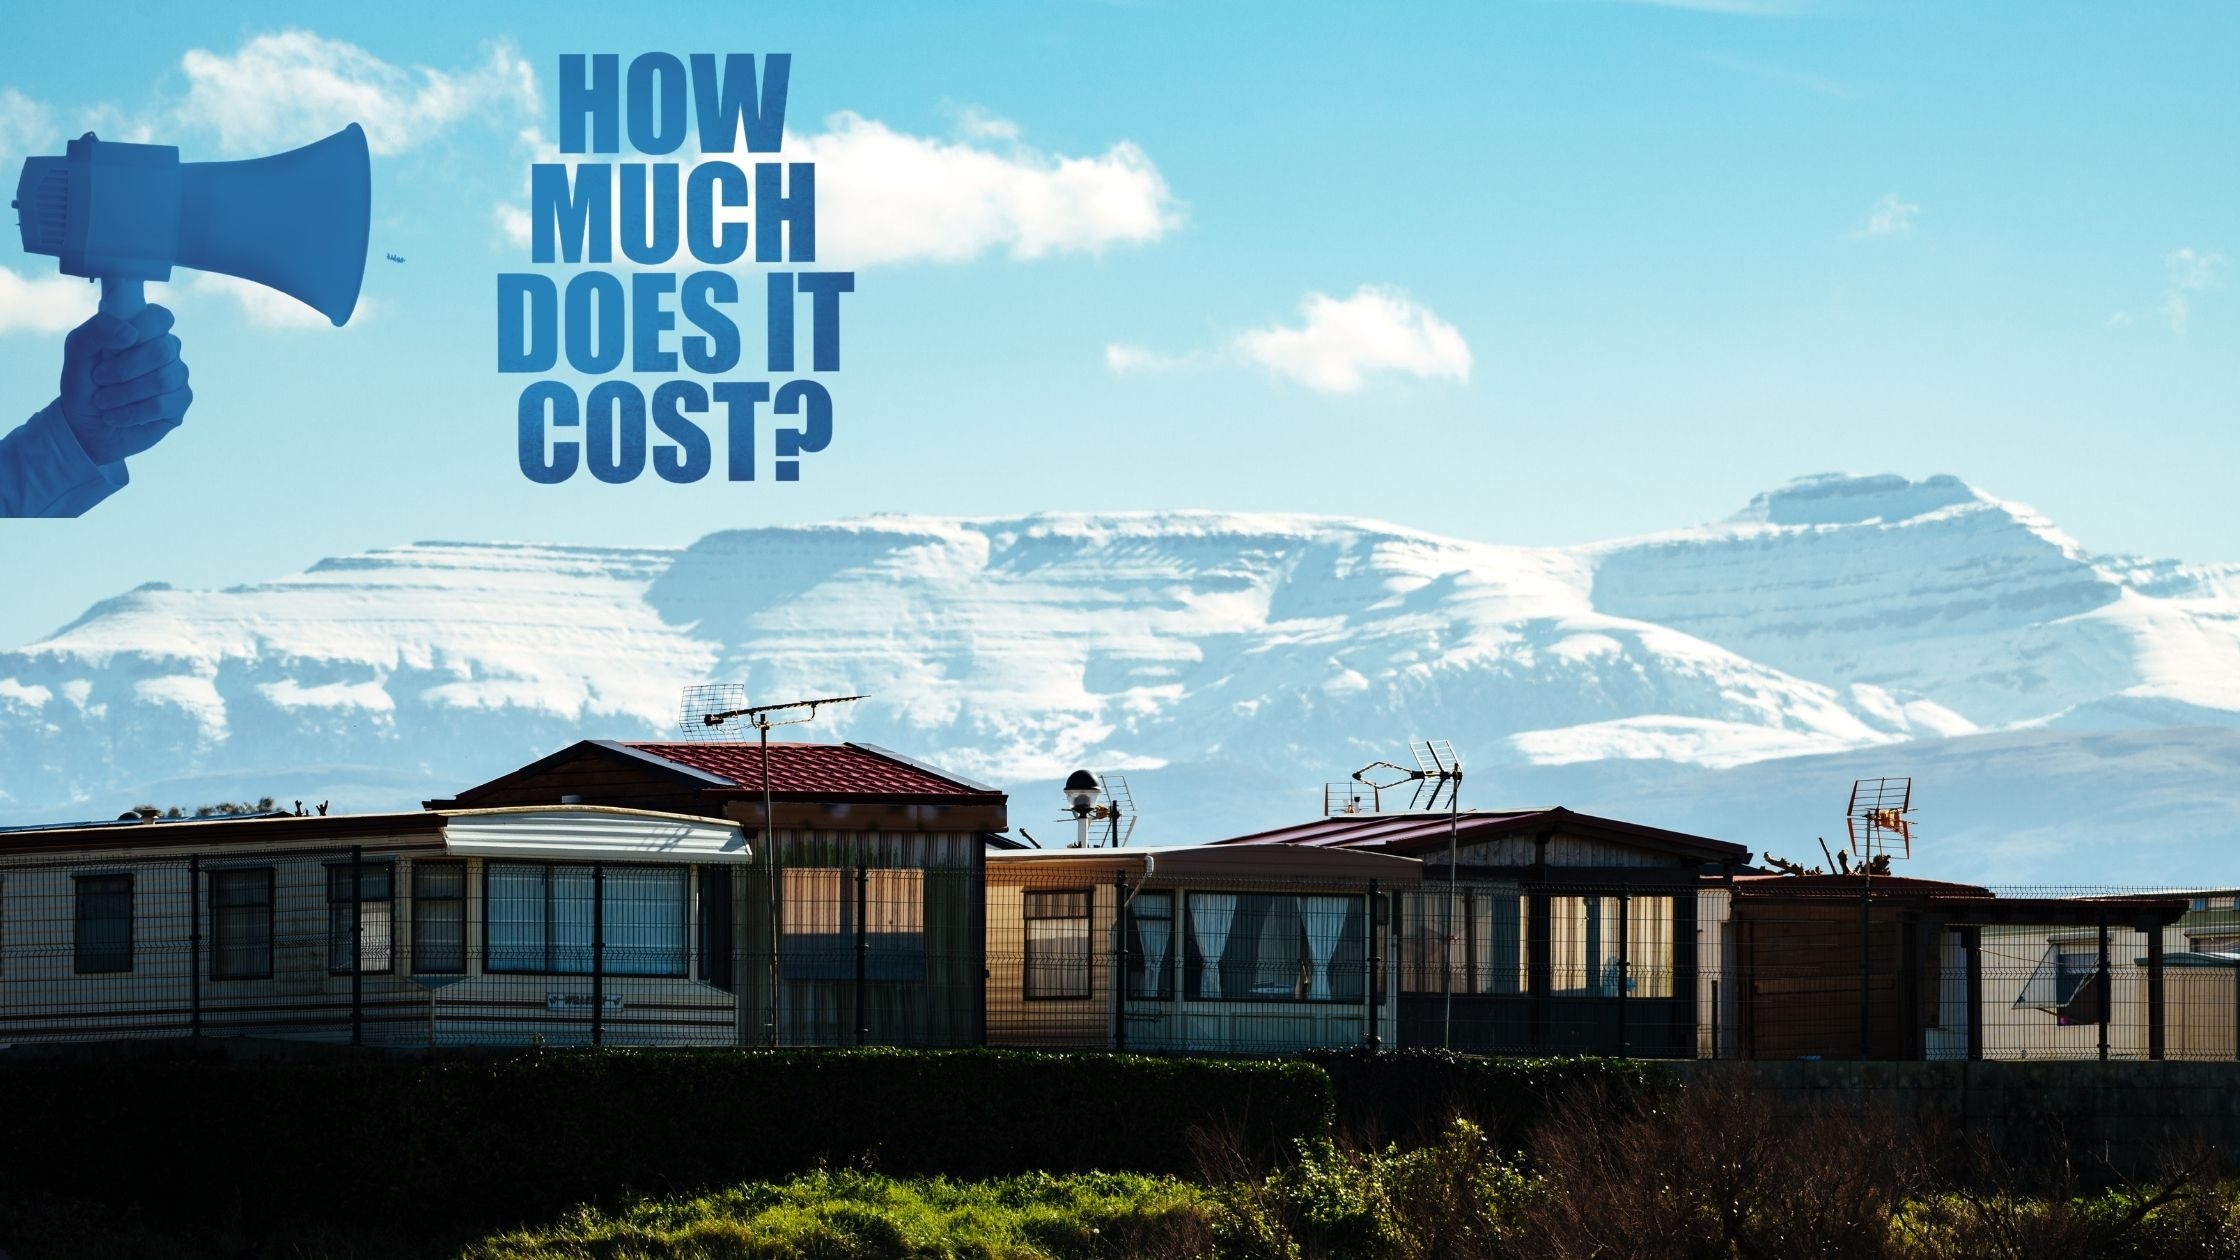 How much is a static caravan?